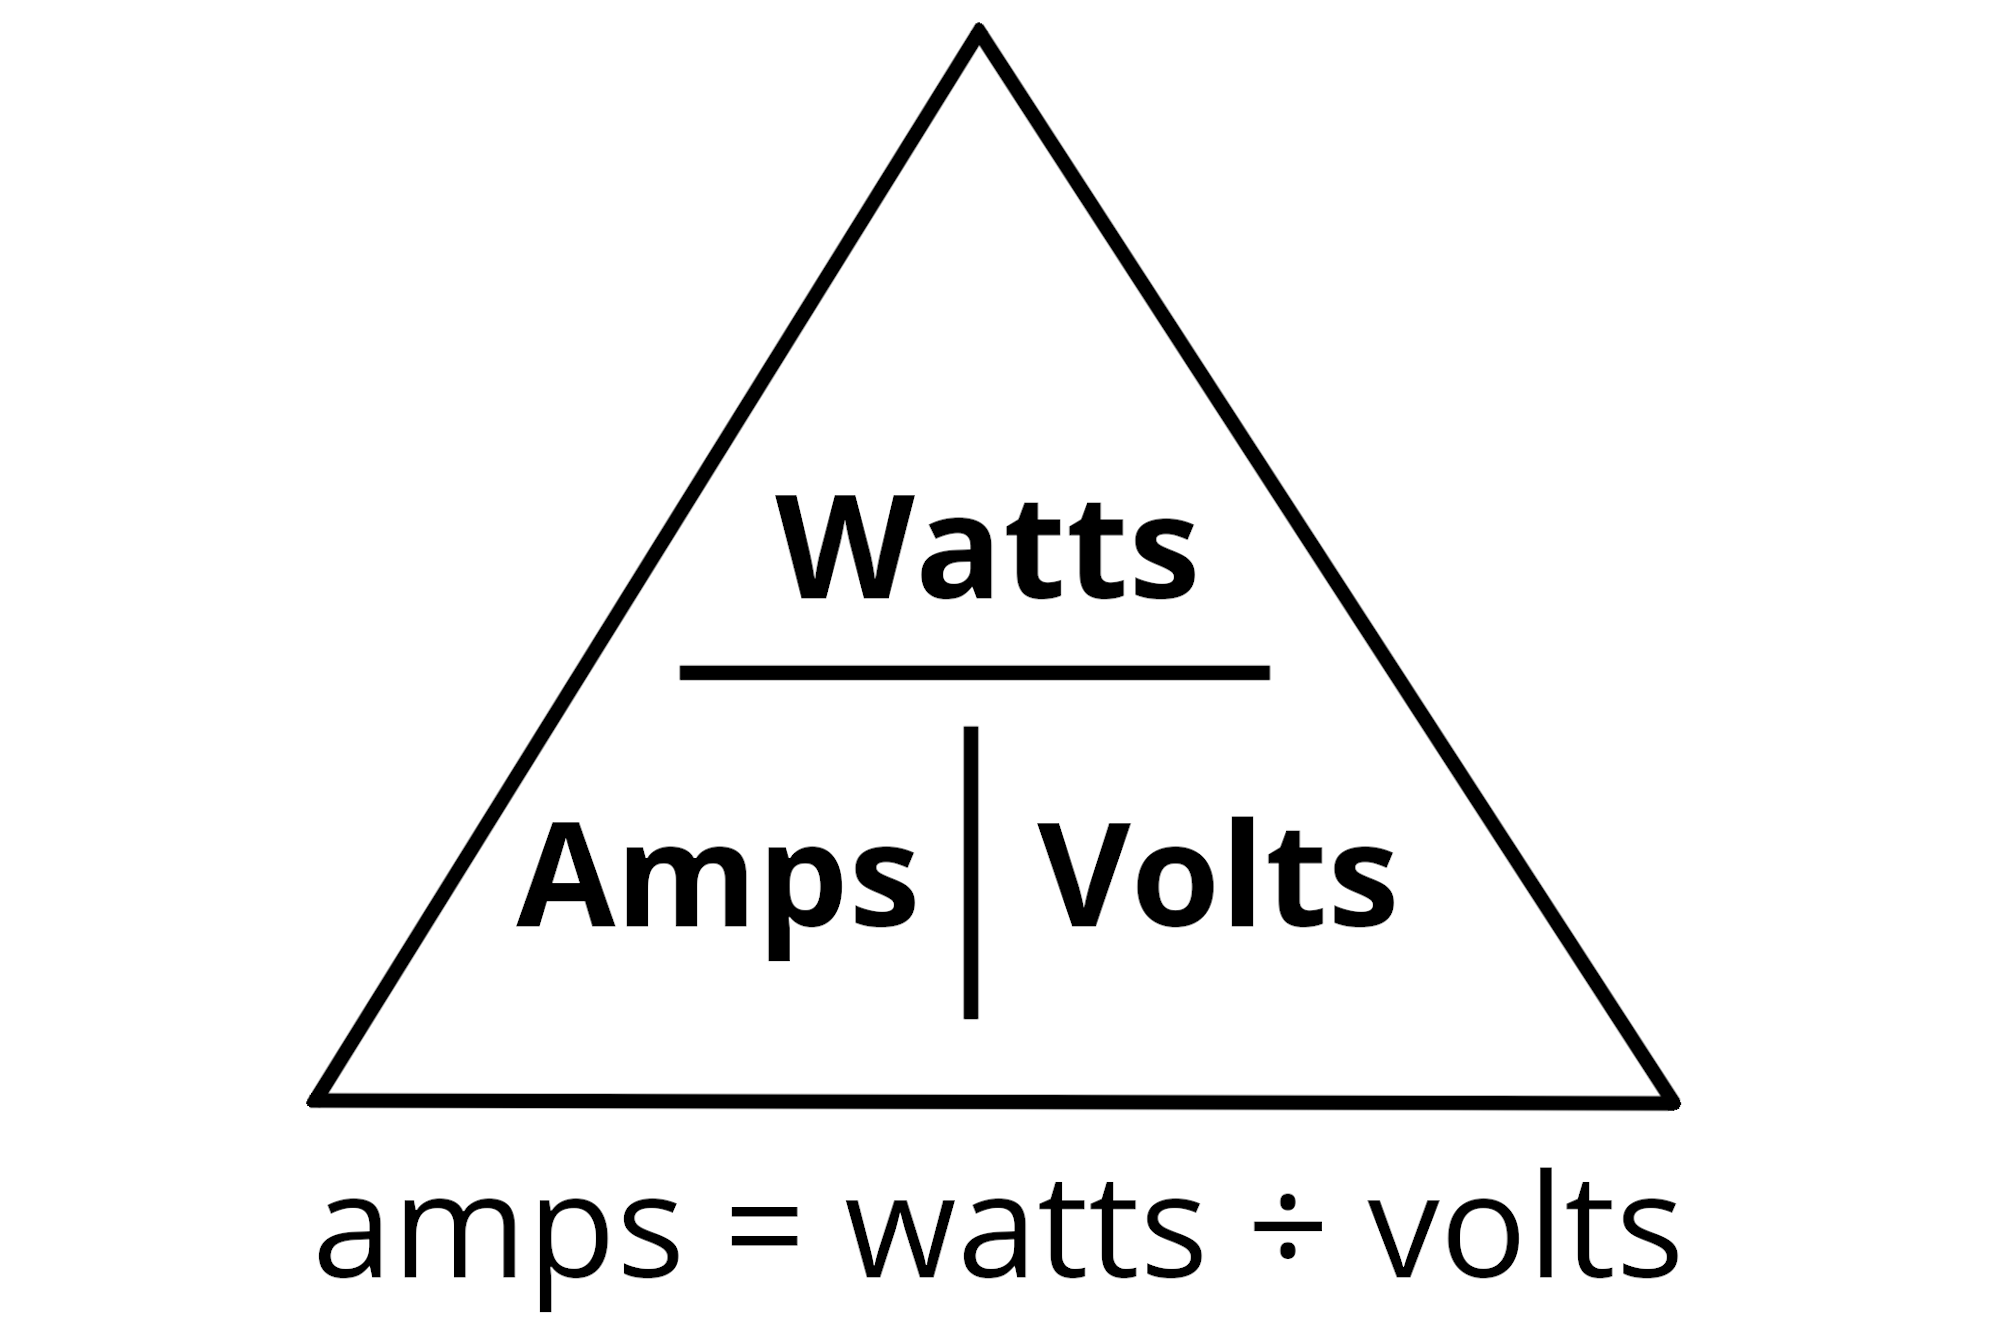 Power triangle illustrating the formula to convert volts to amps with amps being equal to watts divided by volts